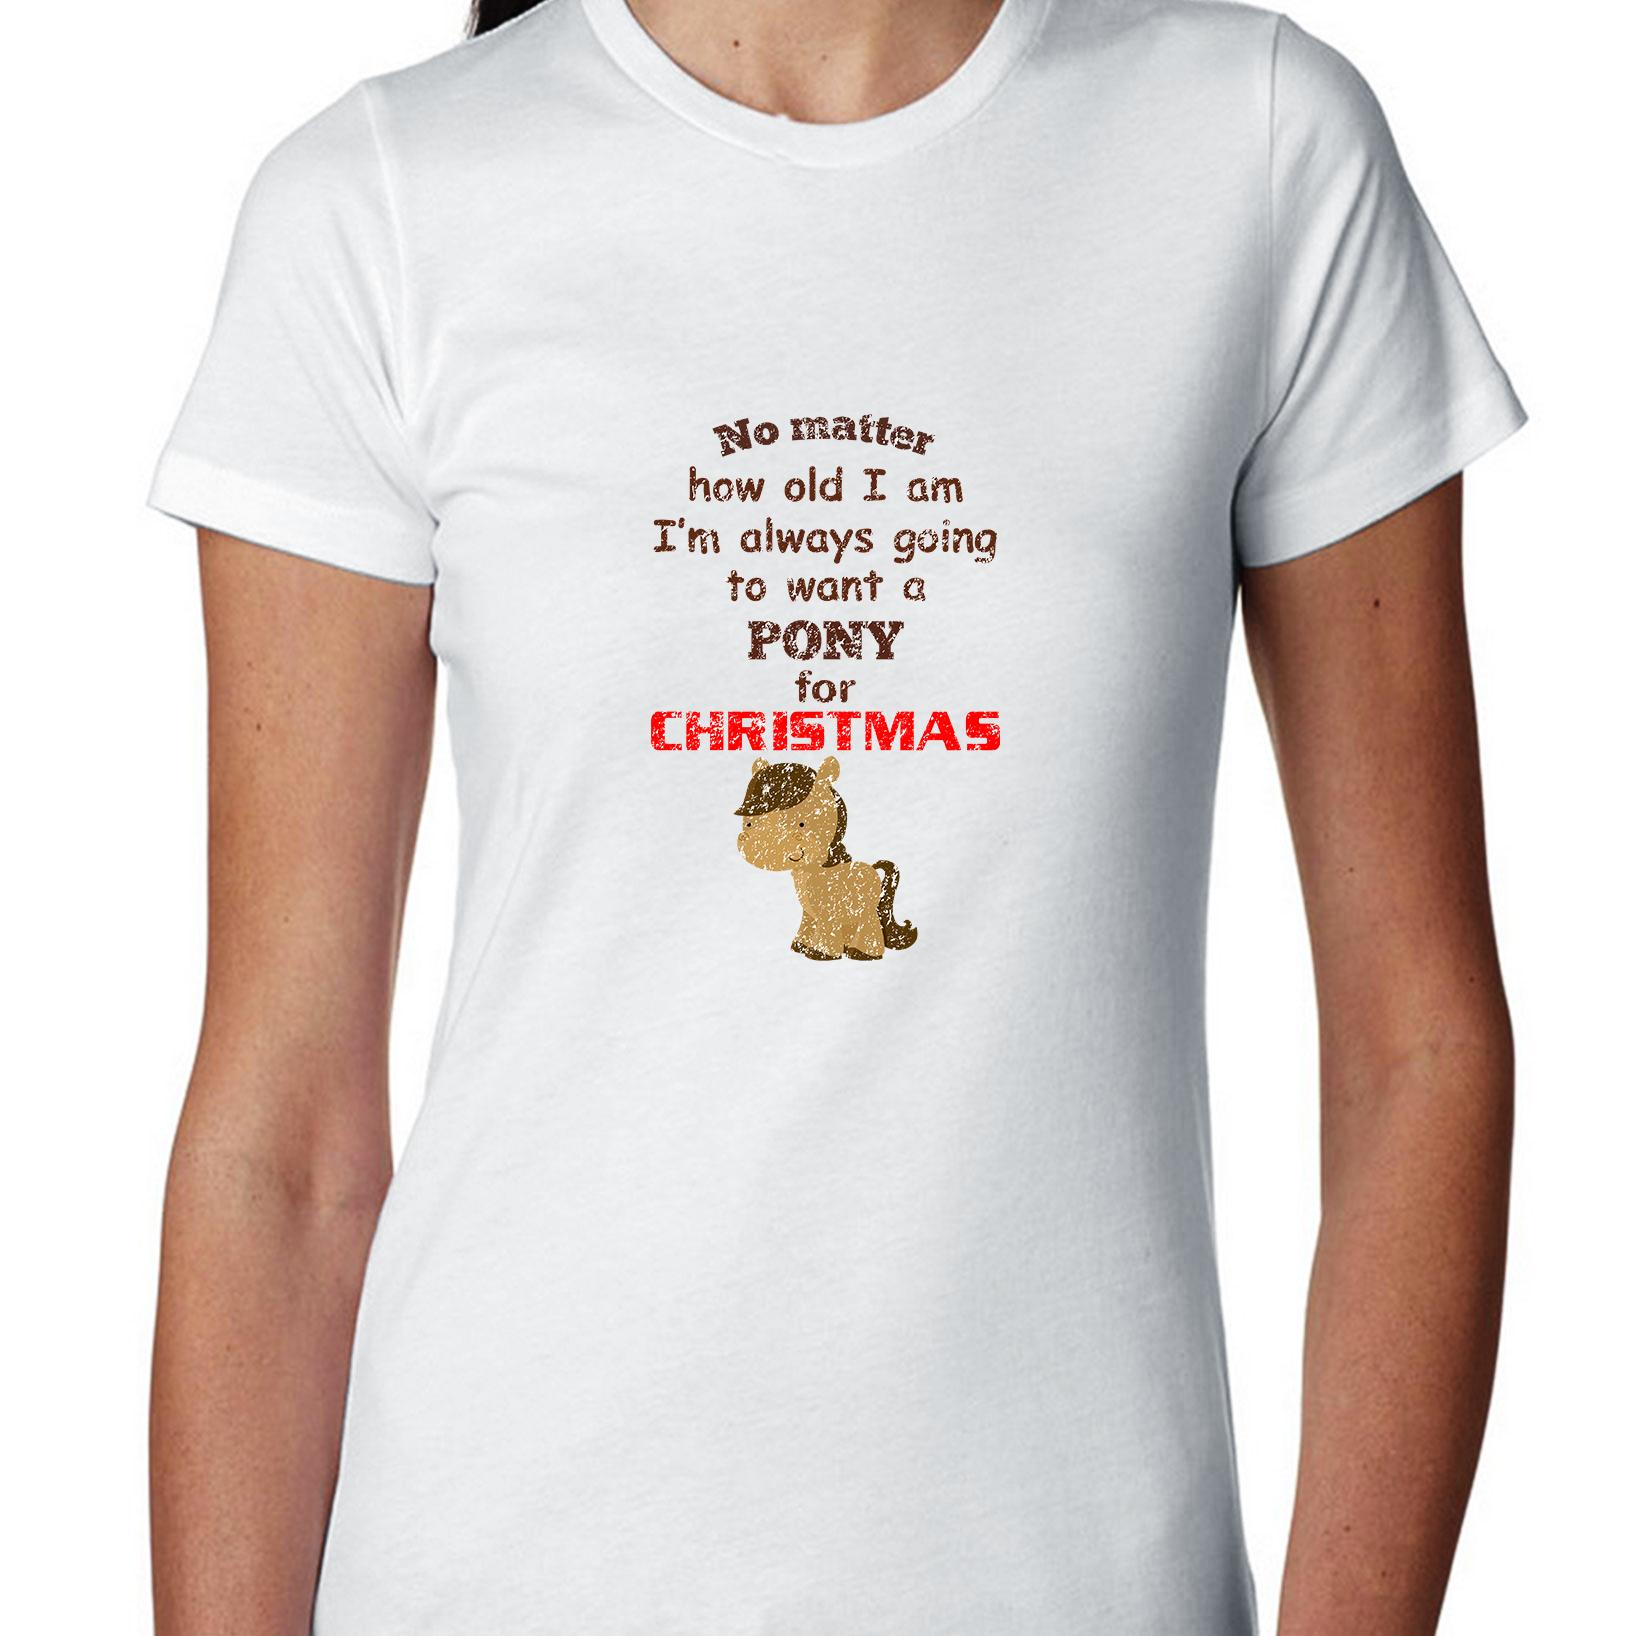 I Am I'm Always Going To Want A Pony For Christmas Women's Cotton T-Shirt